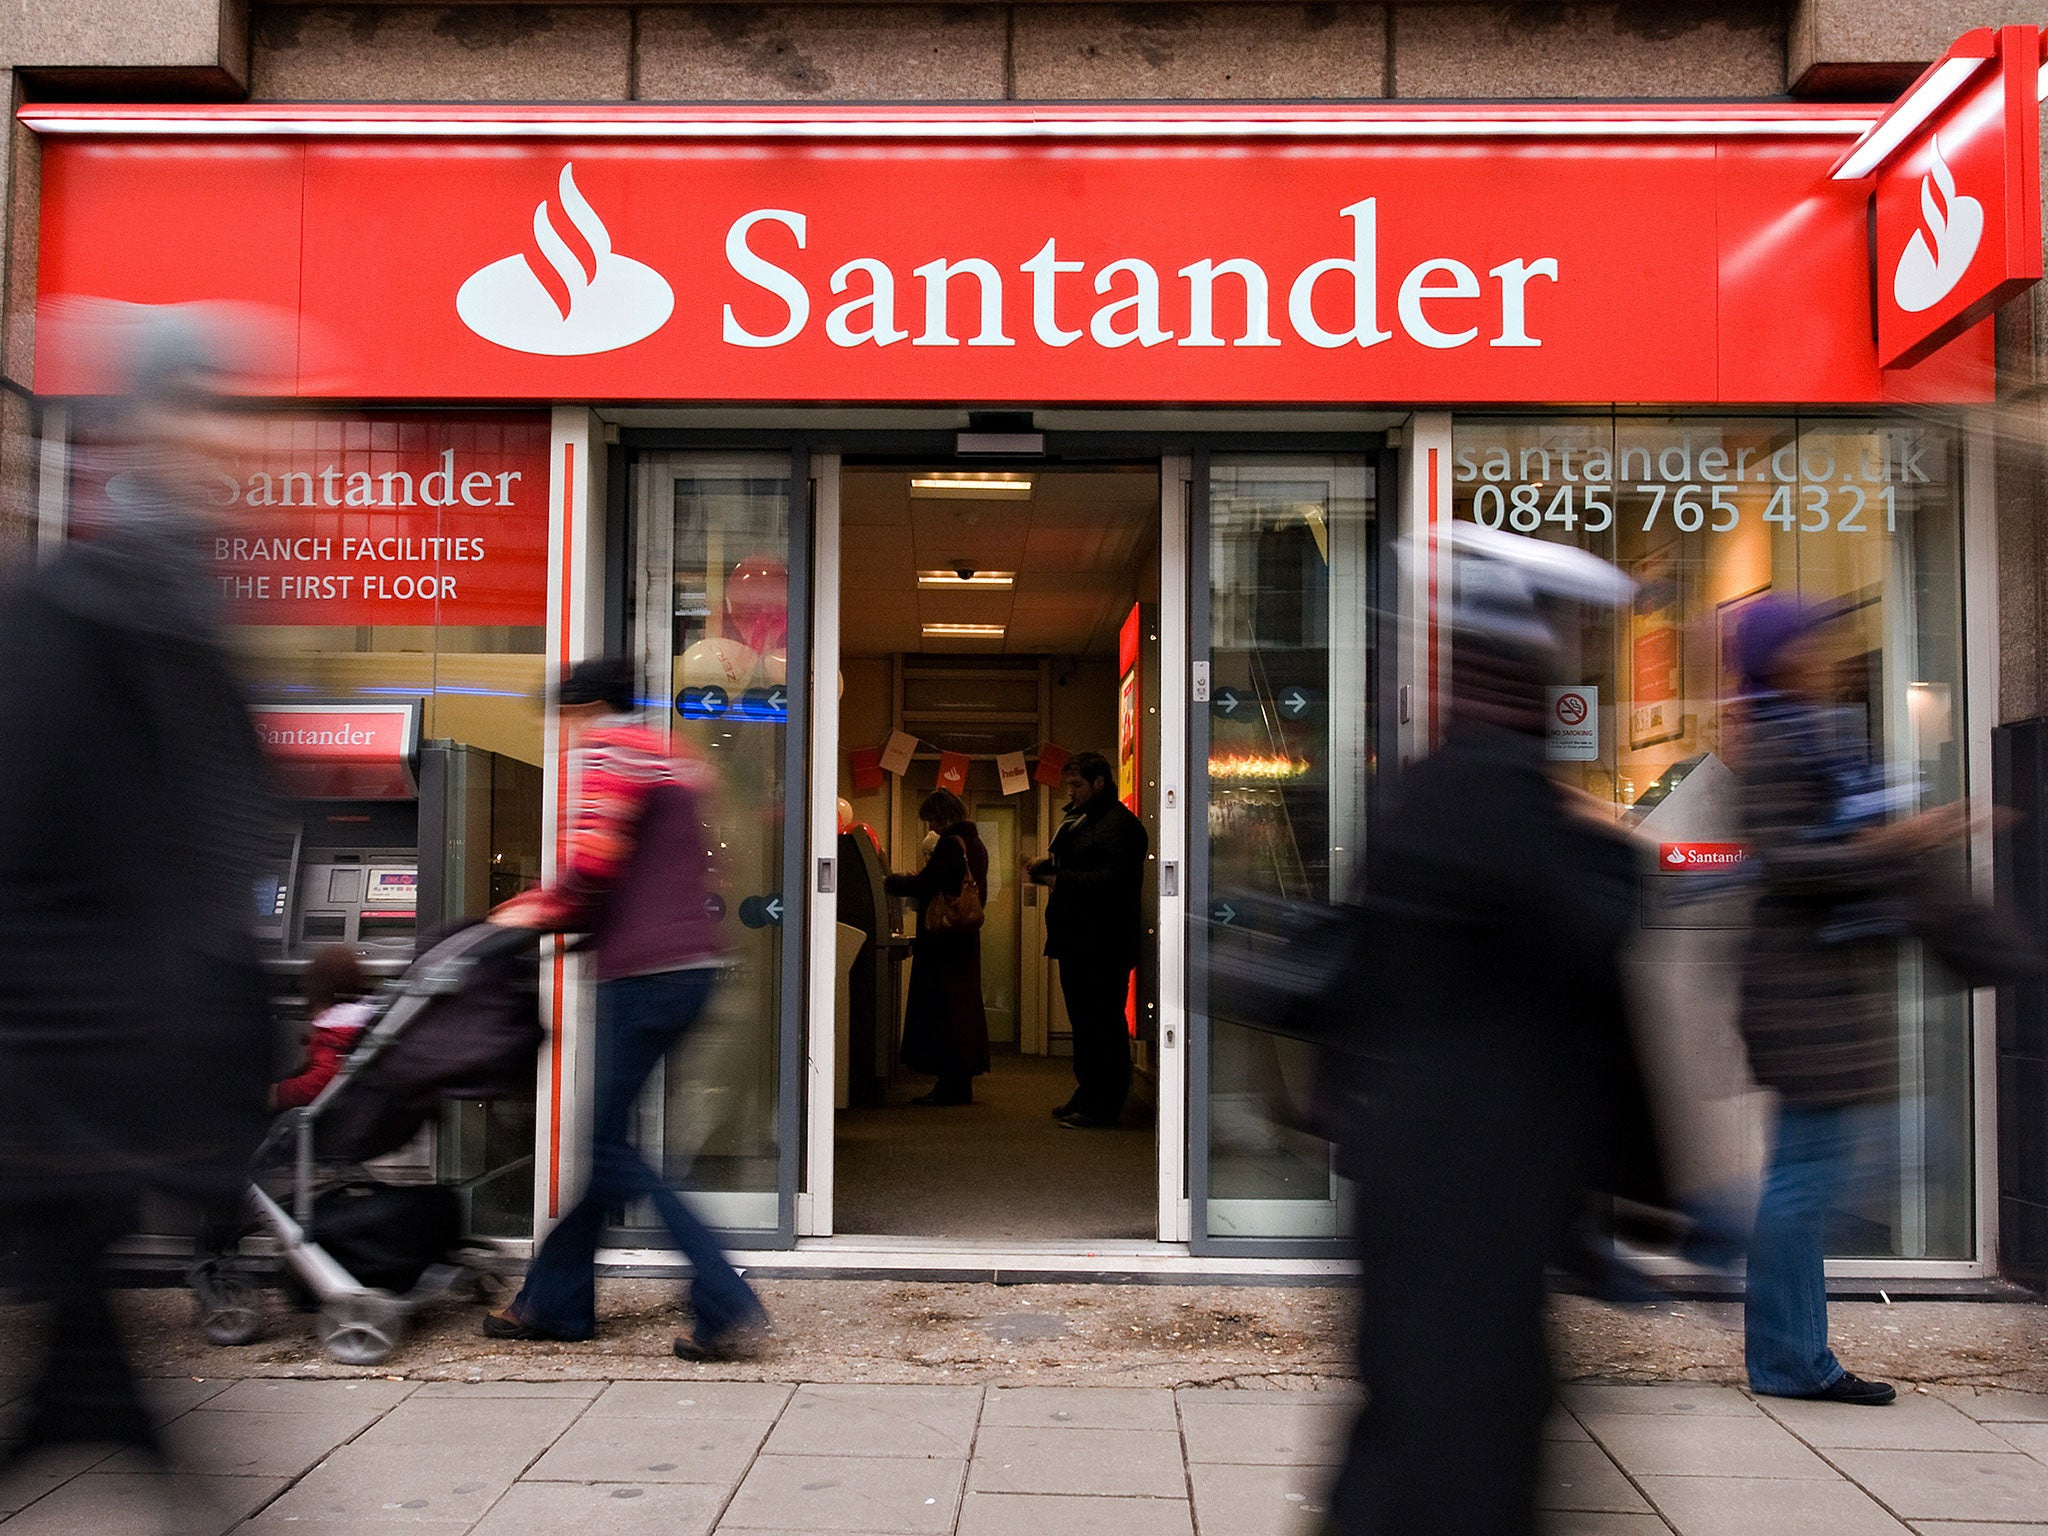 Santander - latest news, breaking stories and comment - The